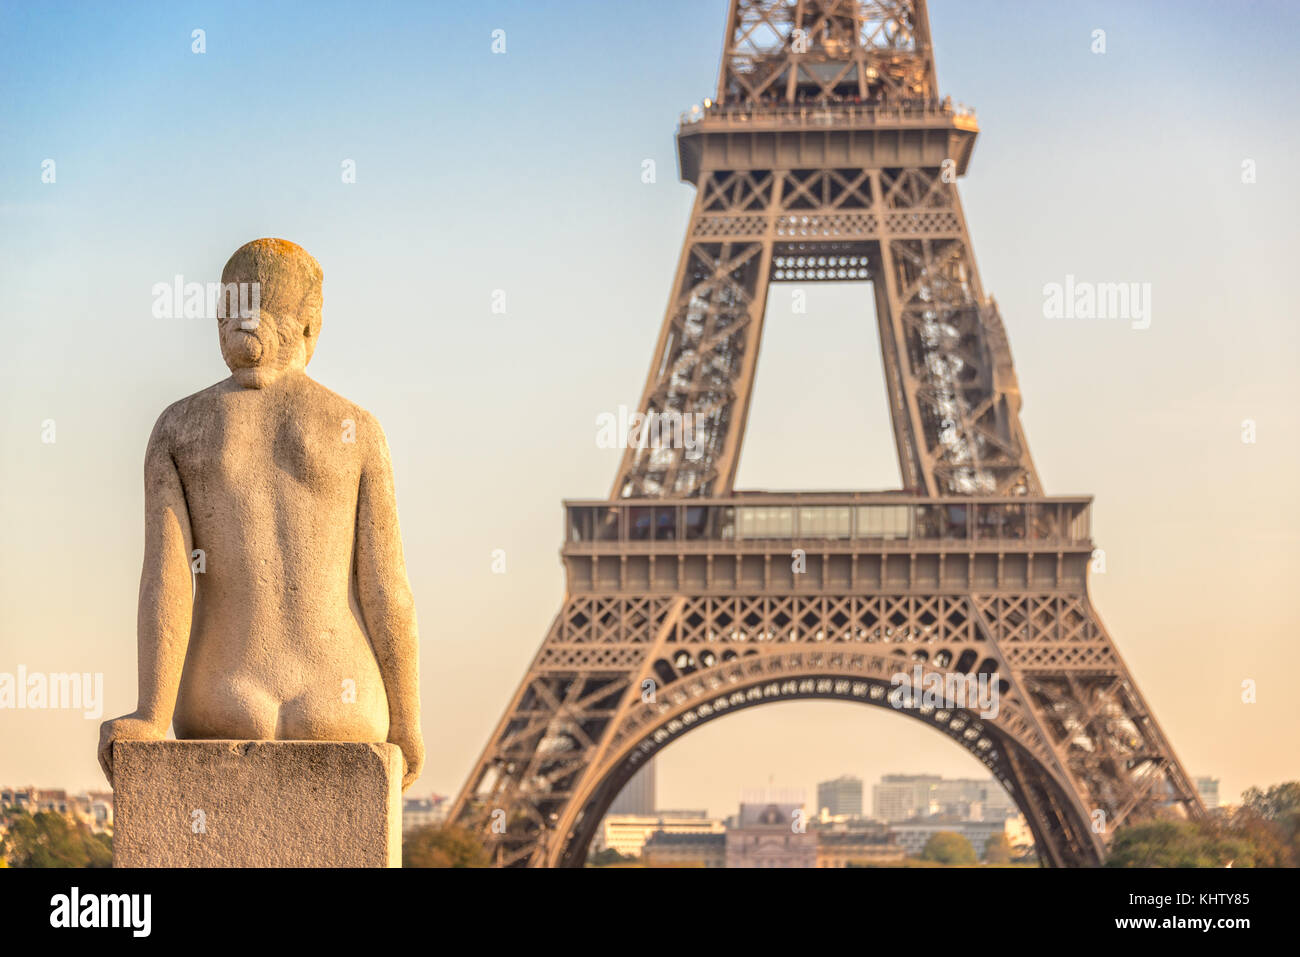 Woman stone statue in the Trocadero garden, Eiffel tower in the background, Paris France - Stock Image